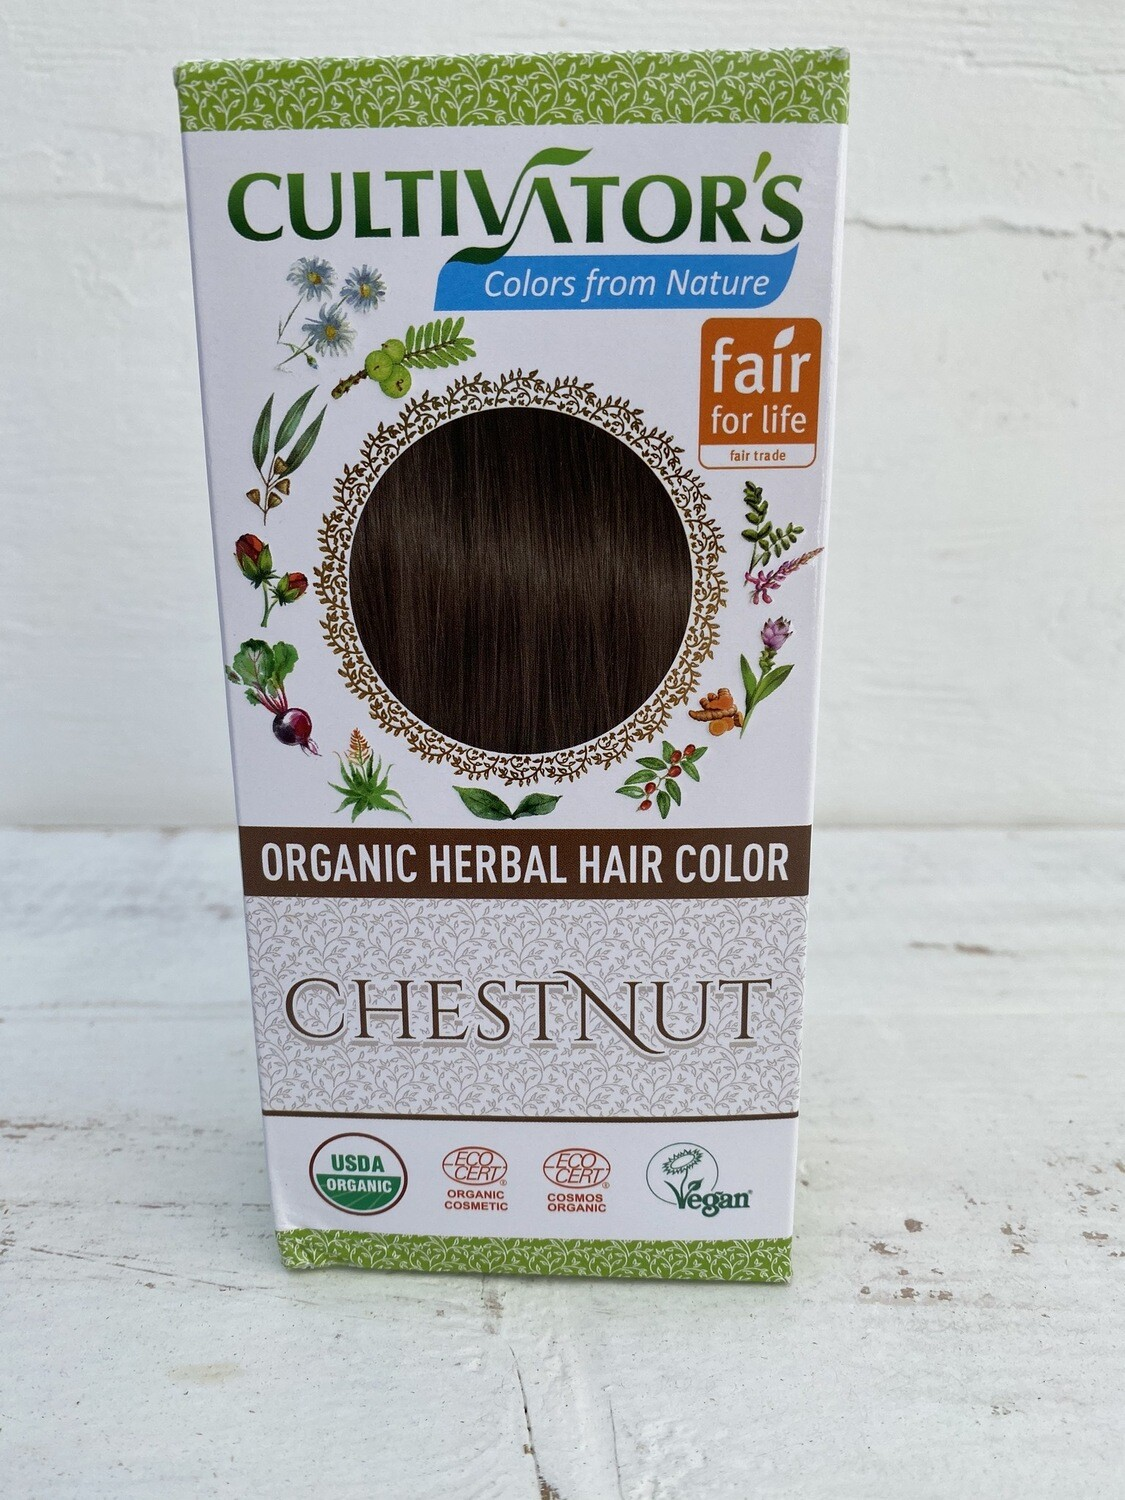 Organic Herbal Hair Color - Chestnut